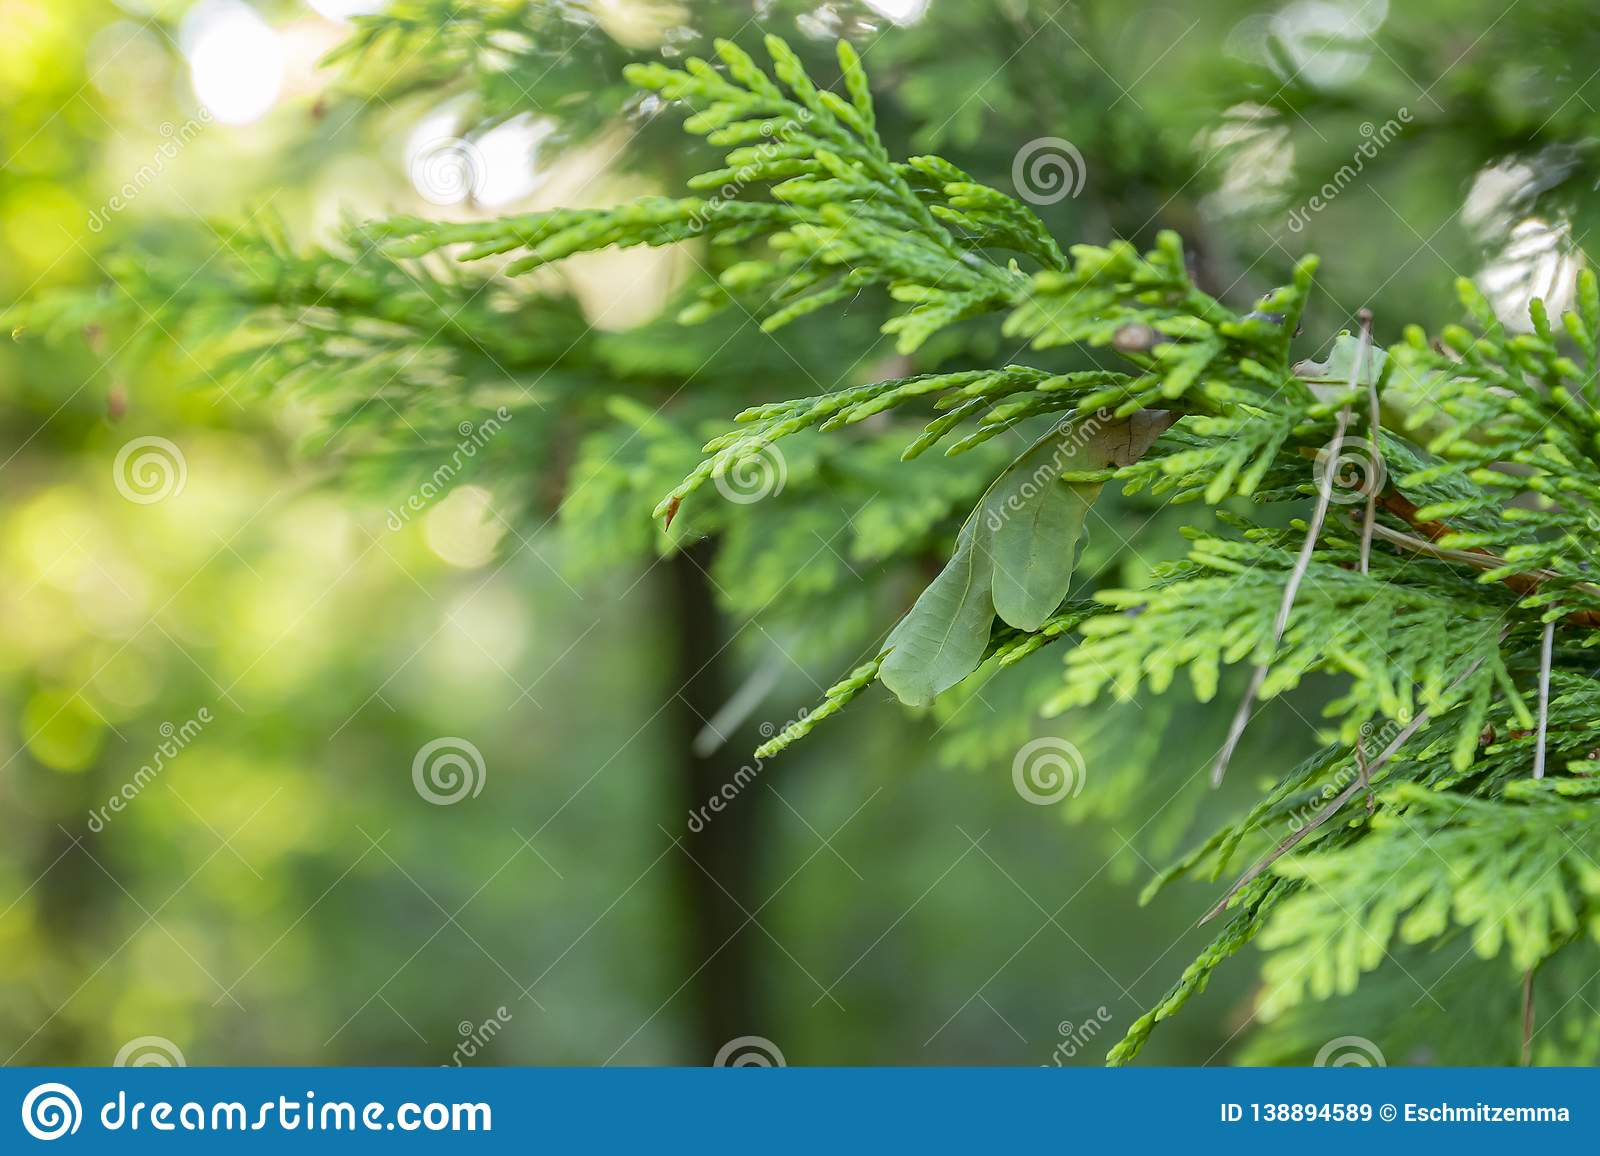 In addition, it's resistant to man. A Branch Of A Conifer With A Leaf Of An Oak Tree And A Few Pine Needles Stock Image Image Of Season Leaves 138894589